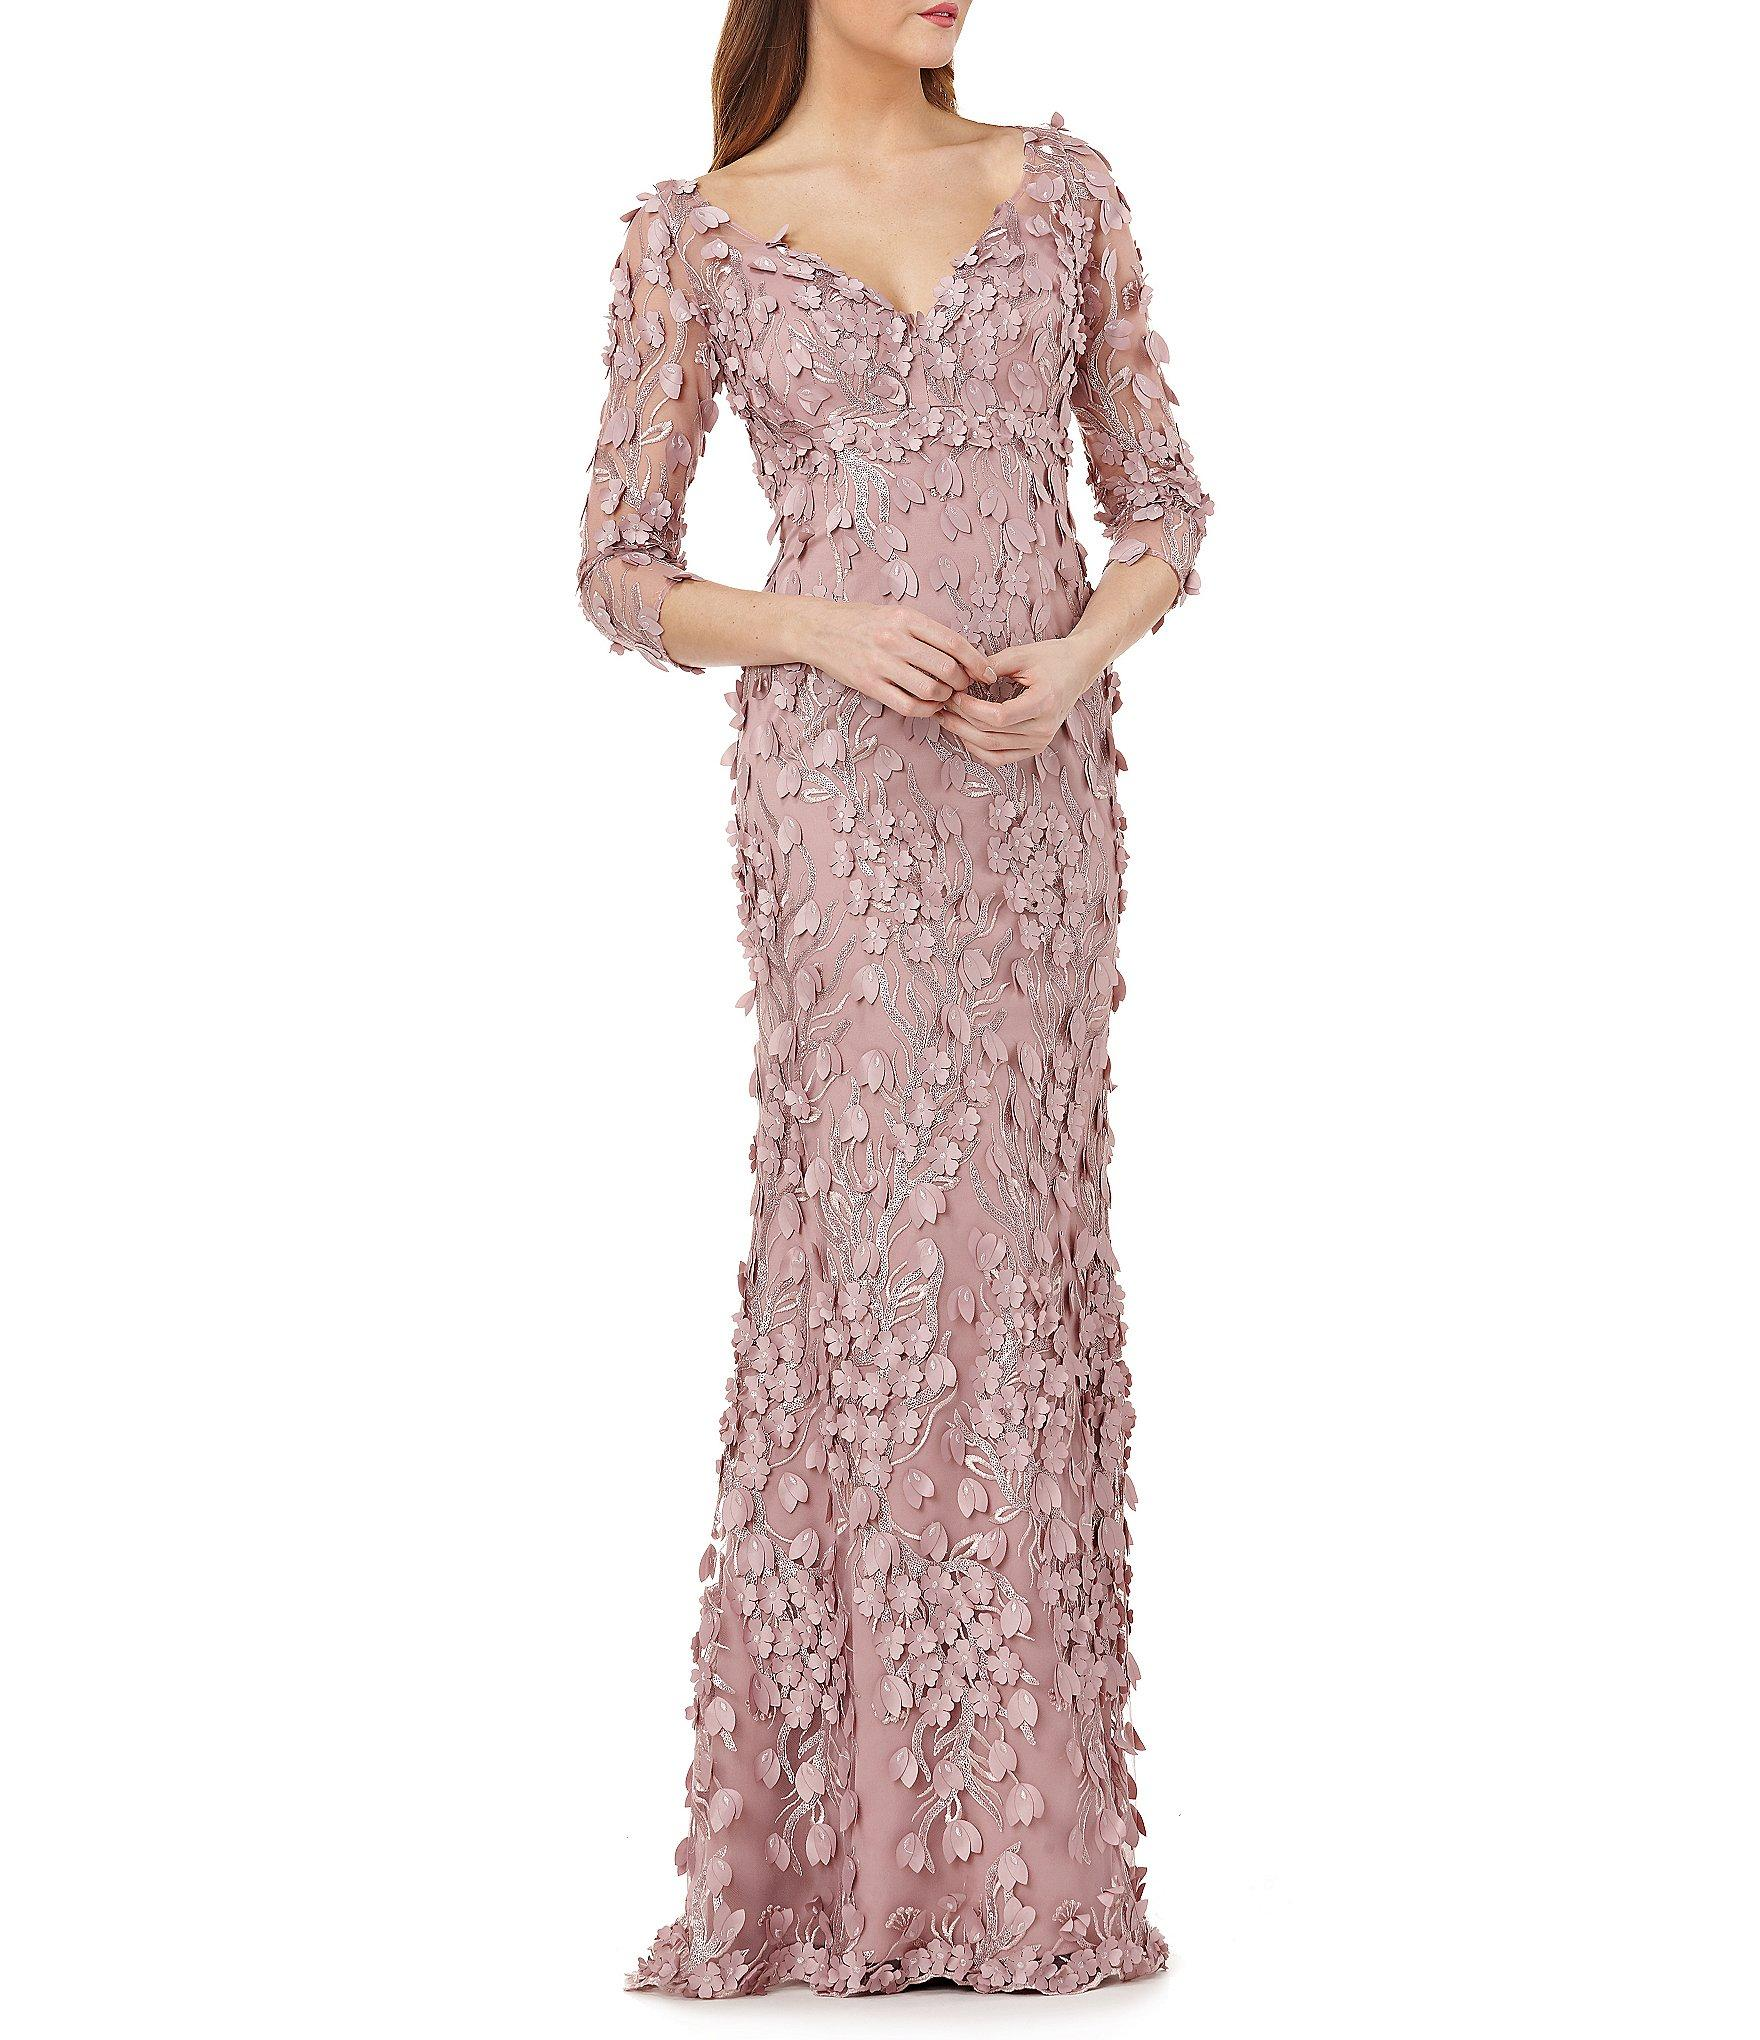 0e226d8f138 Carmen Marc Valvo Infusion V-neck Fleurette Gown in Pink - Save 60 ...